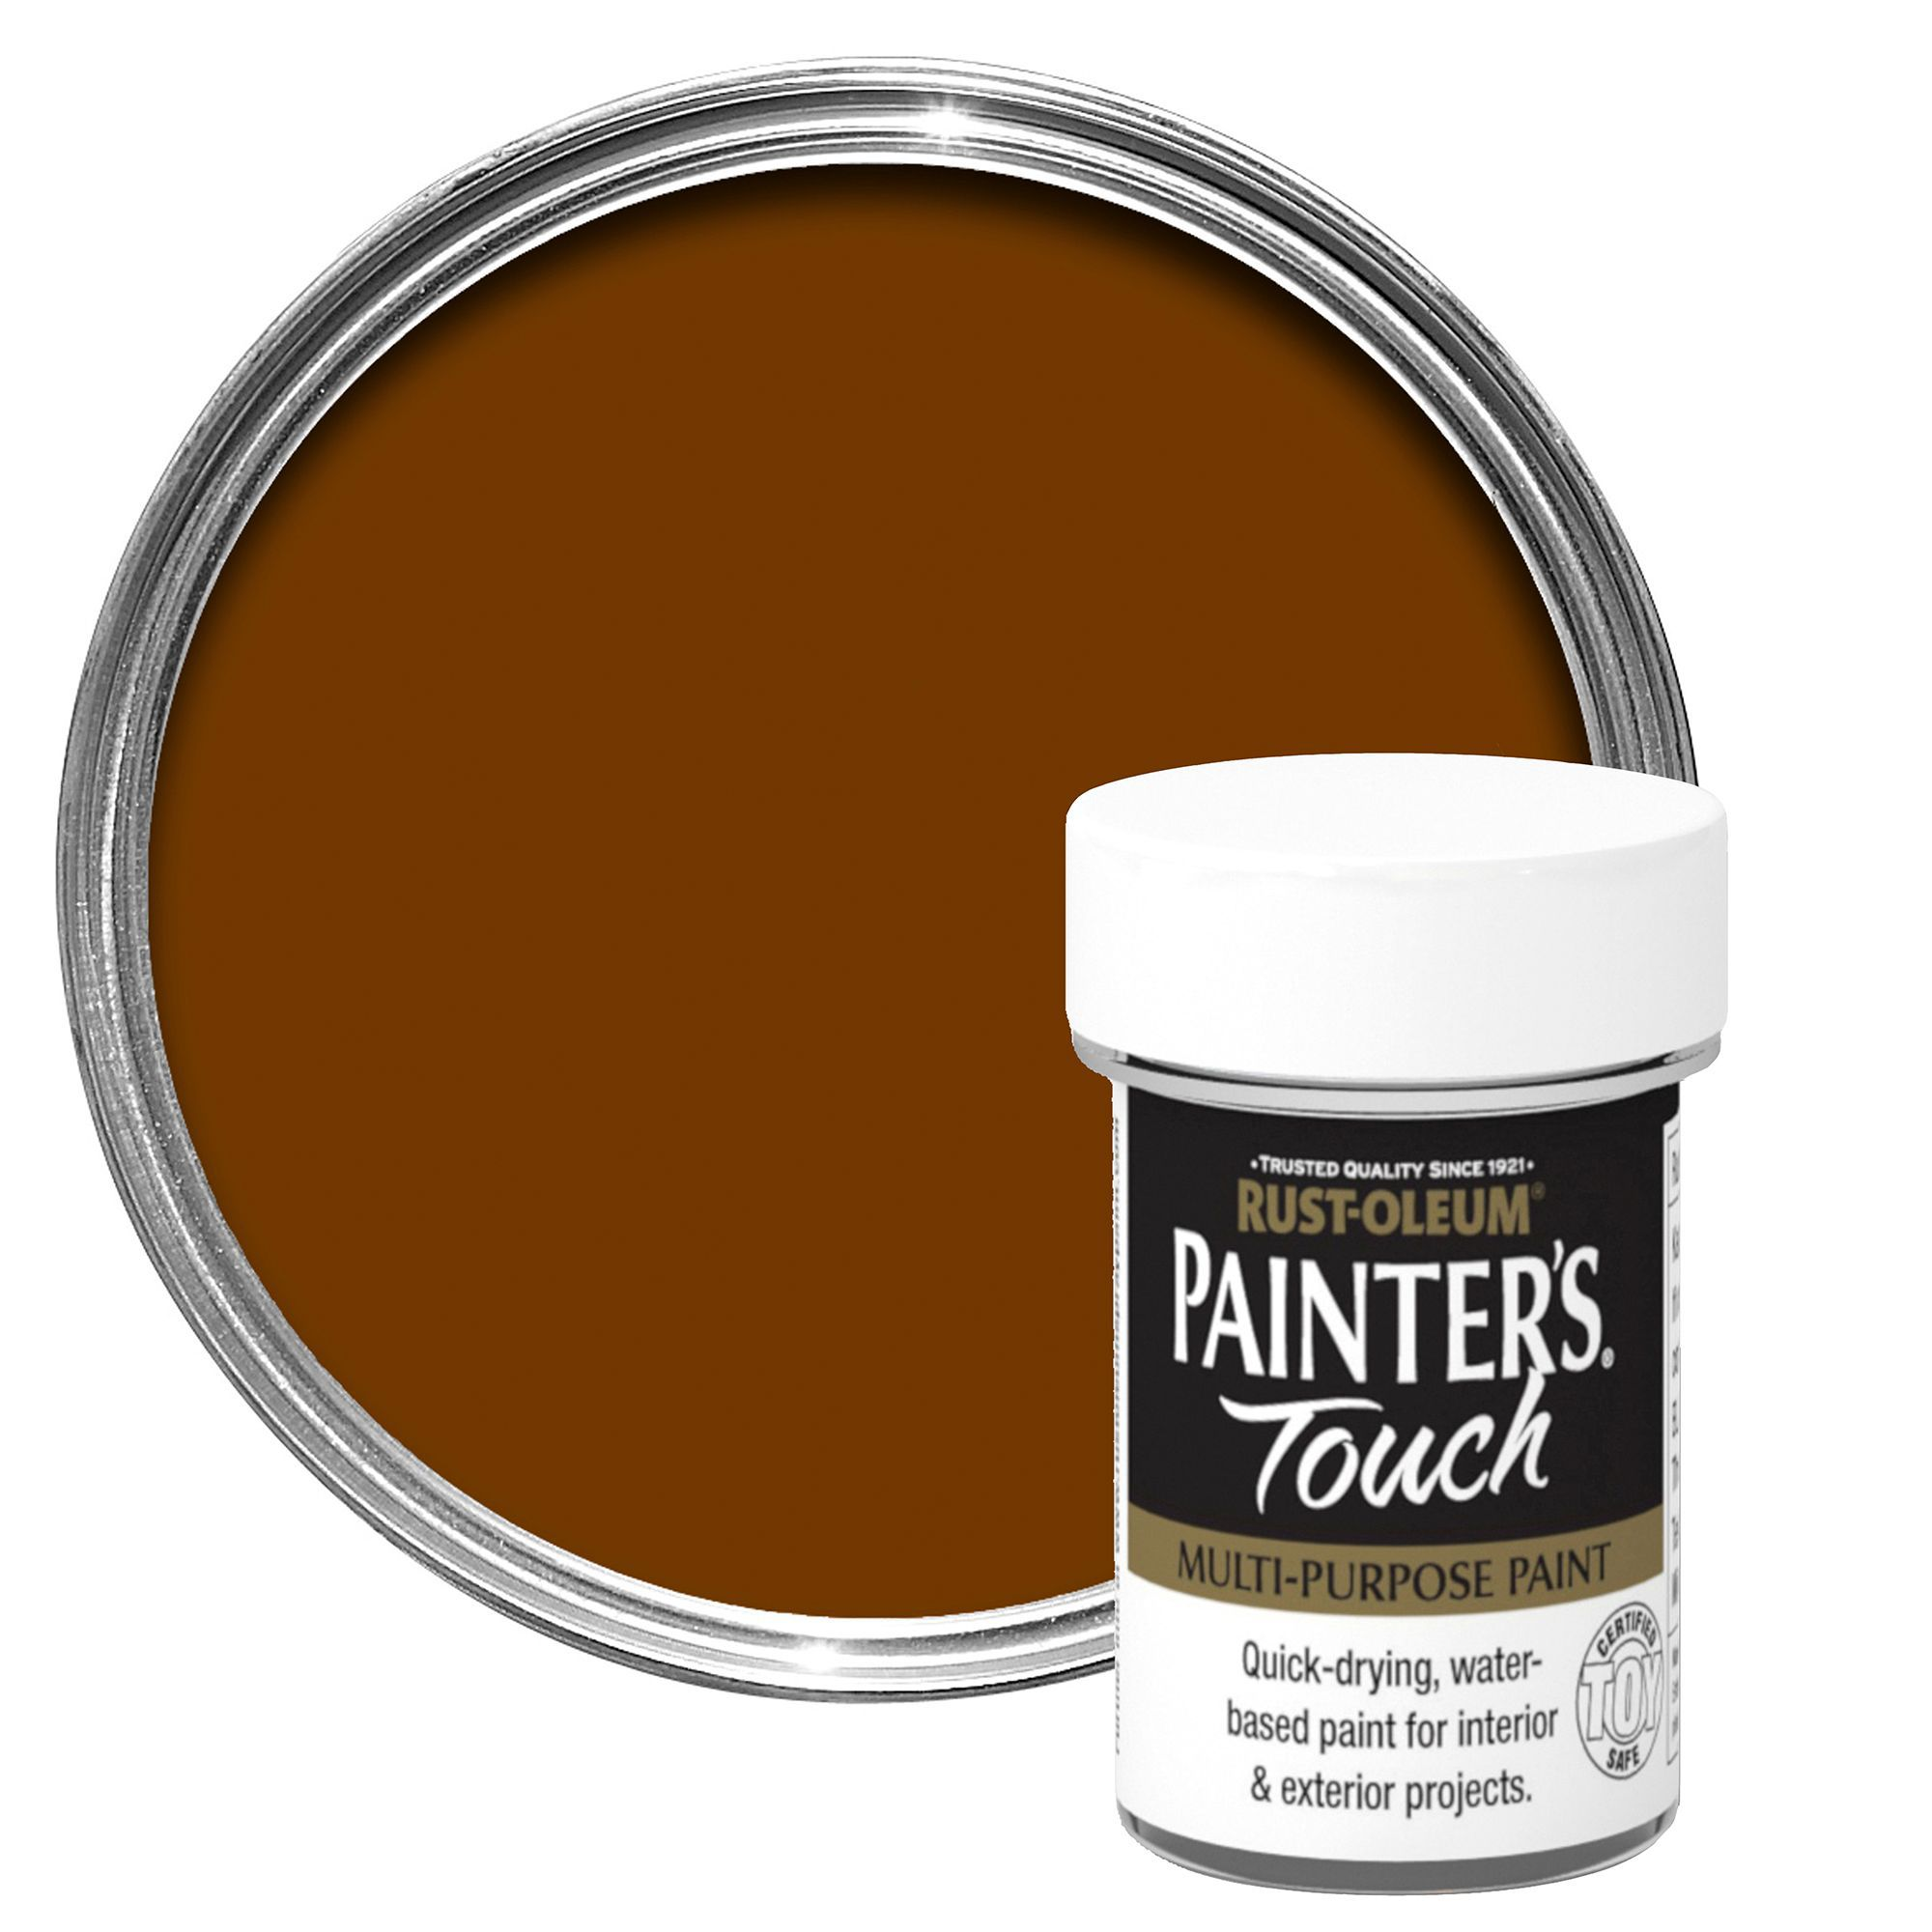 Rust-oleum Painter's Touch Interior & Exterior Old Penny Bronze Metallic Multipurpose Paint 20ml